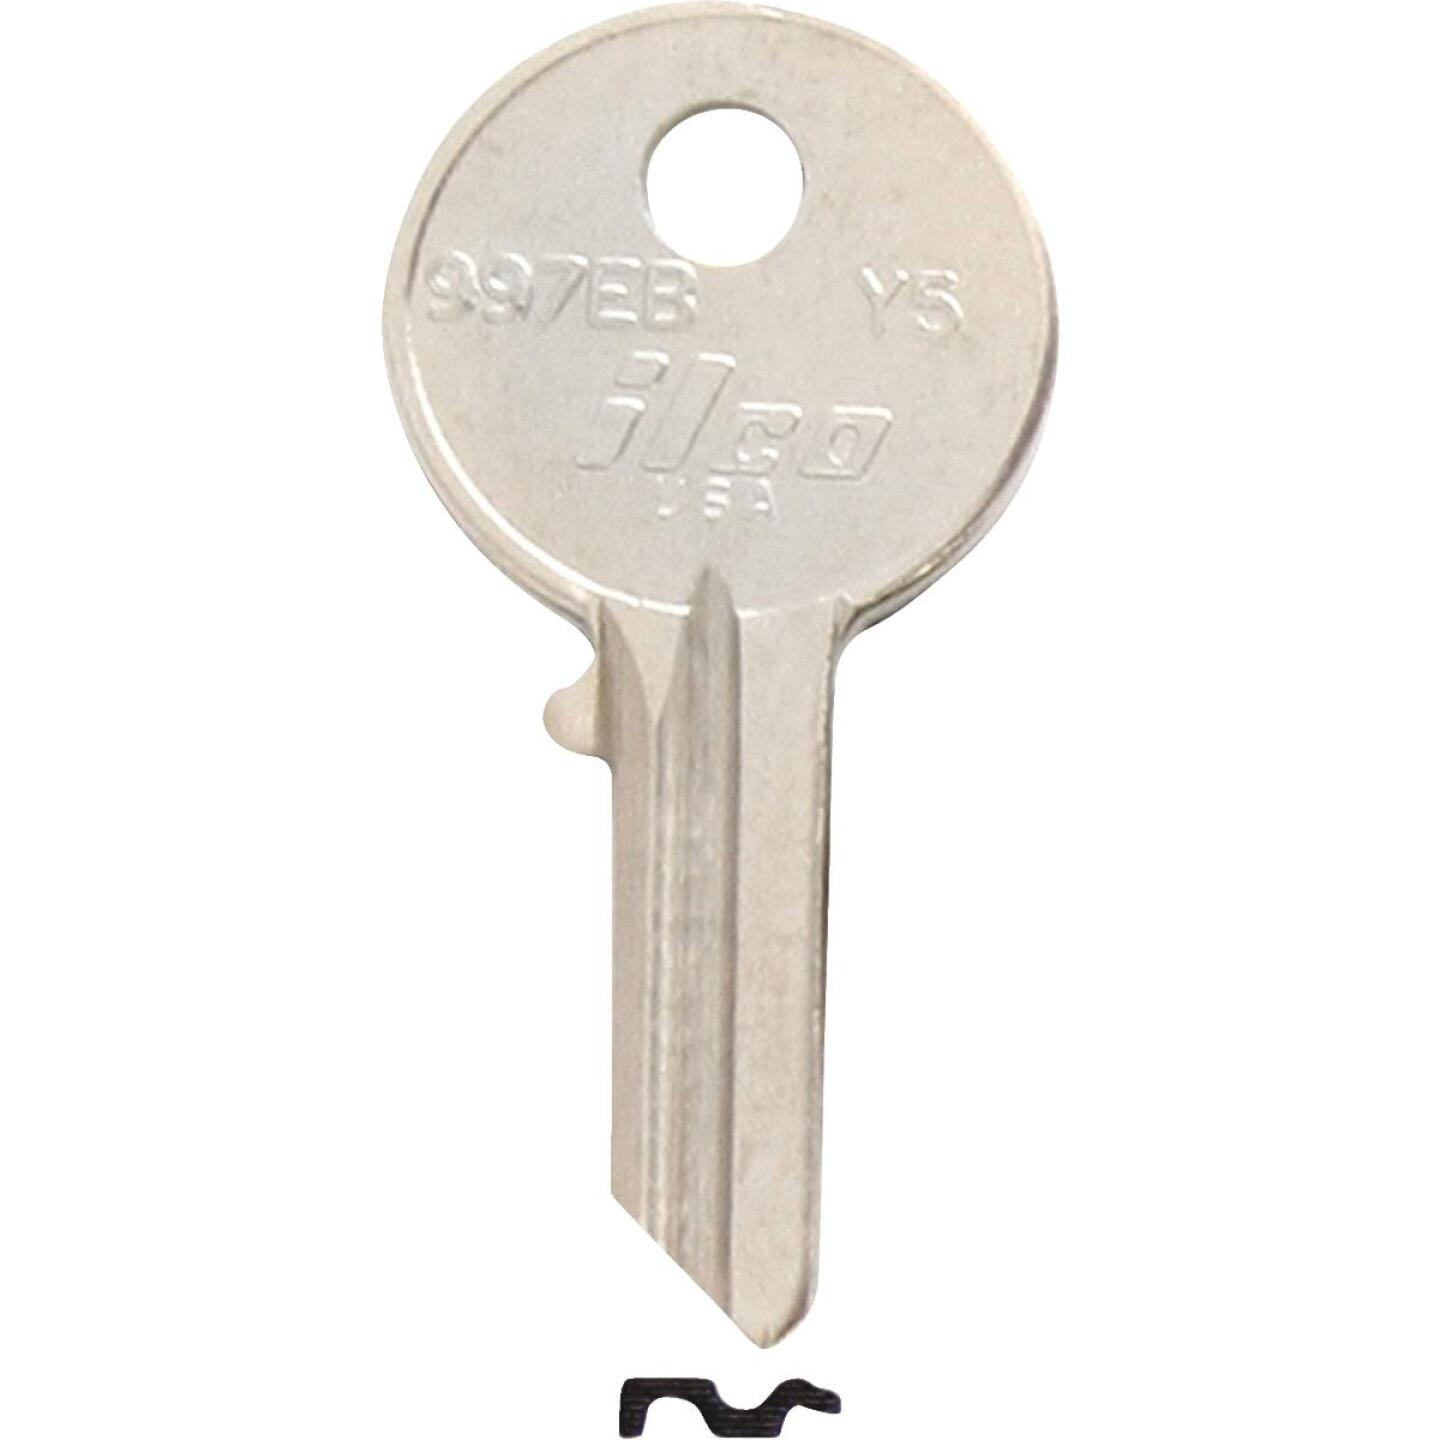 ILCO Yale Nickel Plated House Key, Y5 (10-Pack) Image 1